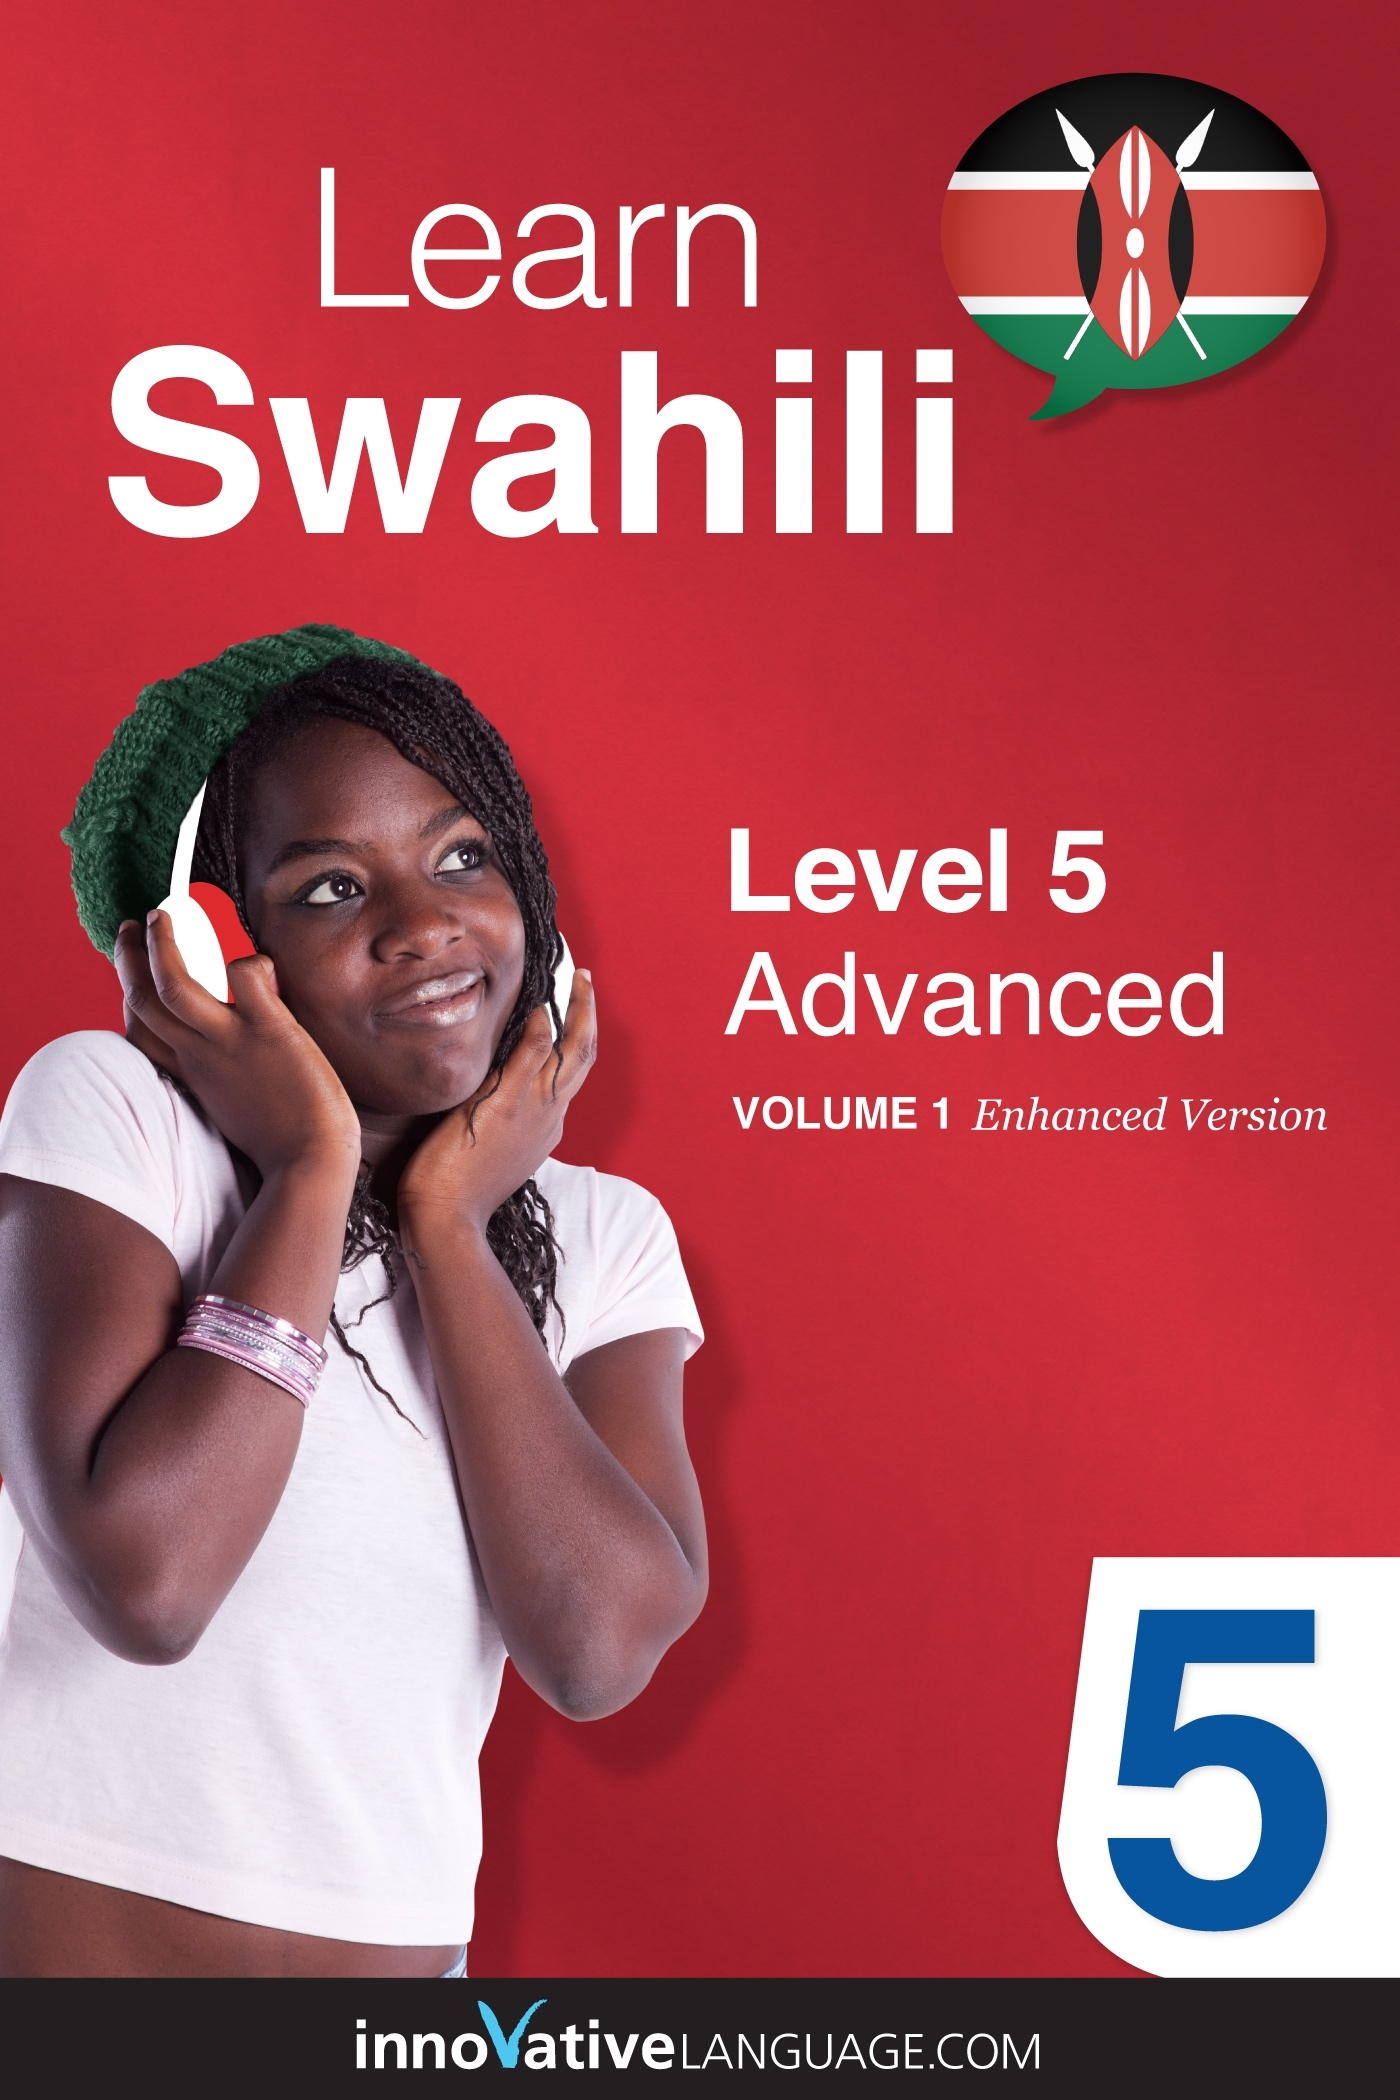 [eBook] Learn Swahili - Level 5: Advanced